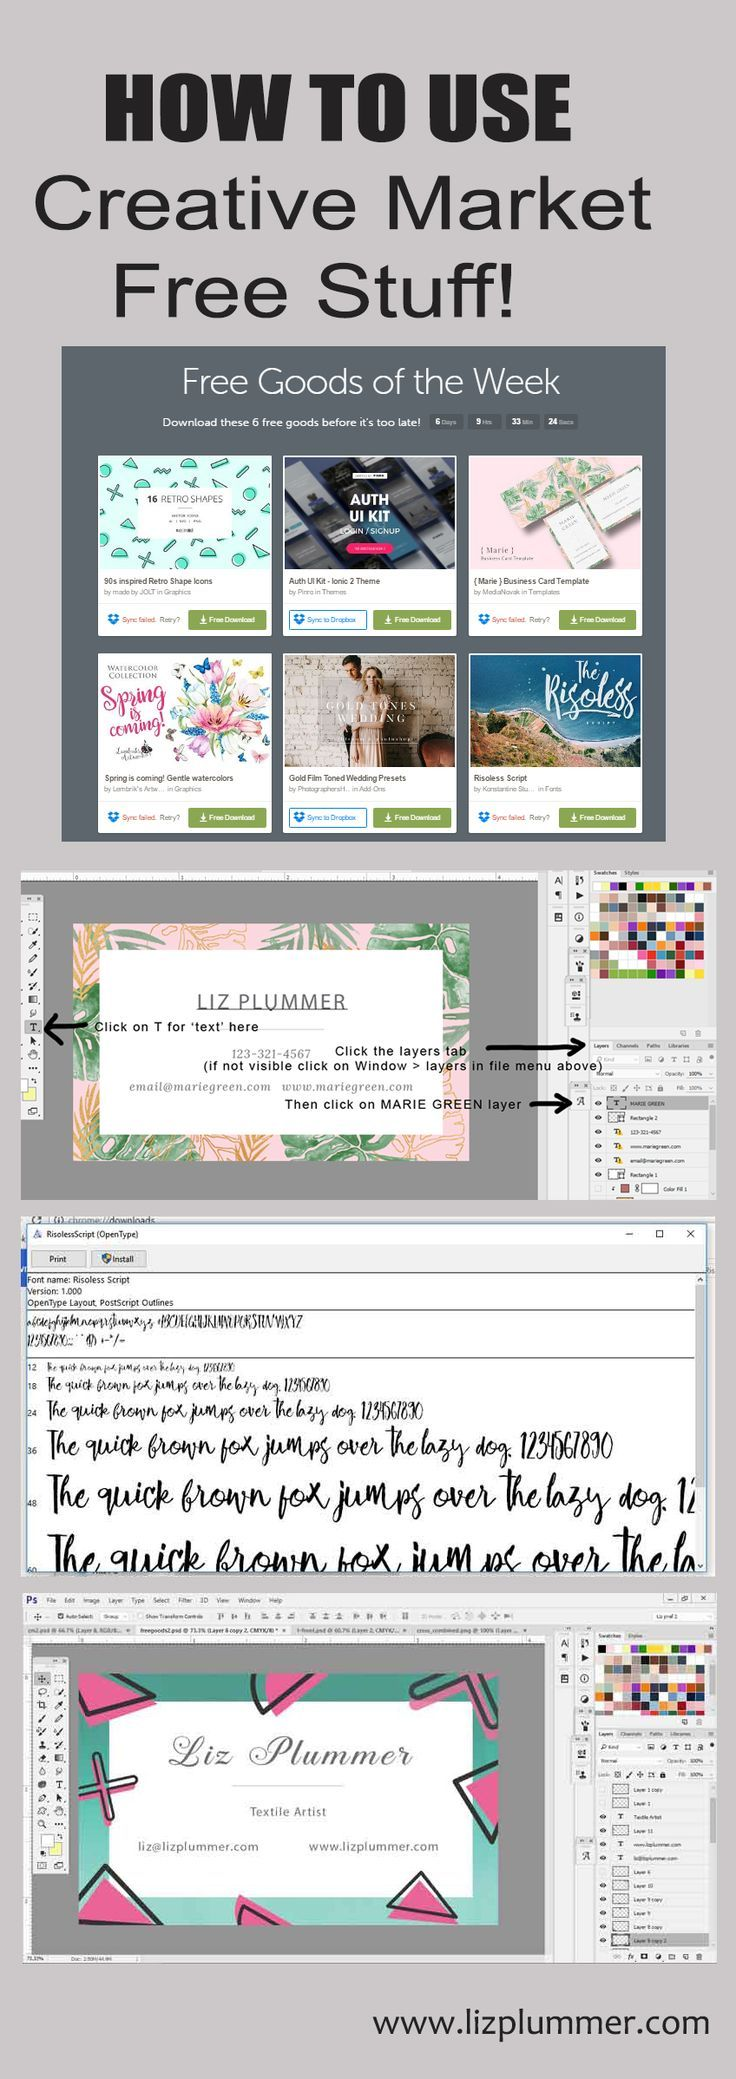 Free graphic design resources and how to use them - photo tutorial using Photoshop to download Creative Market's free products